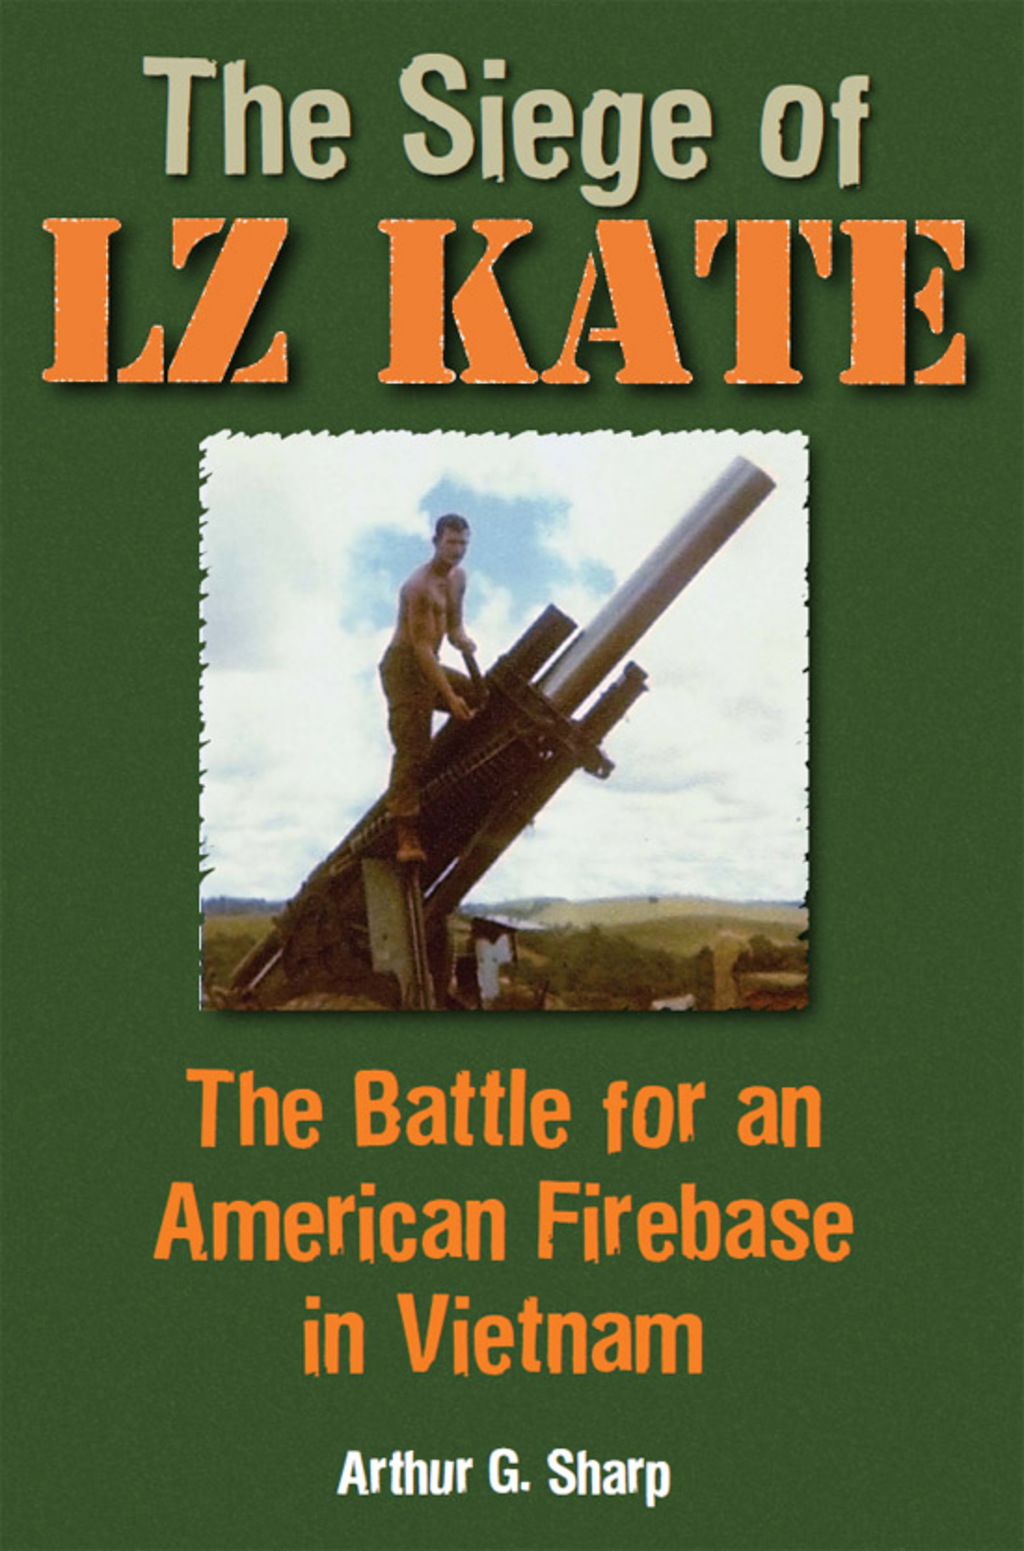 The Siege of LZ Kate: The Battle for an American Firebase in Vietnam (ebook) eBooks